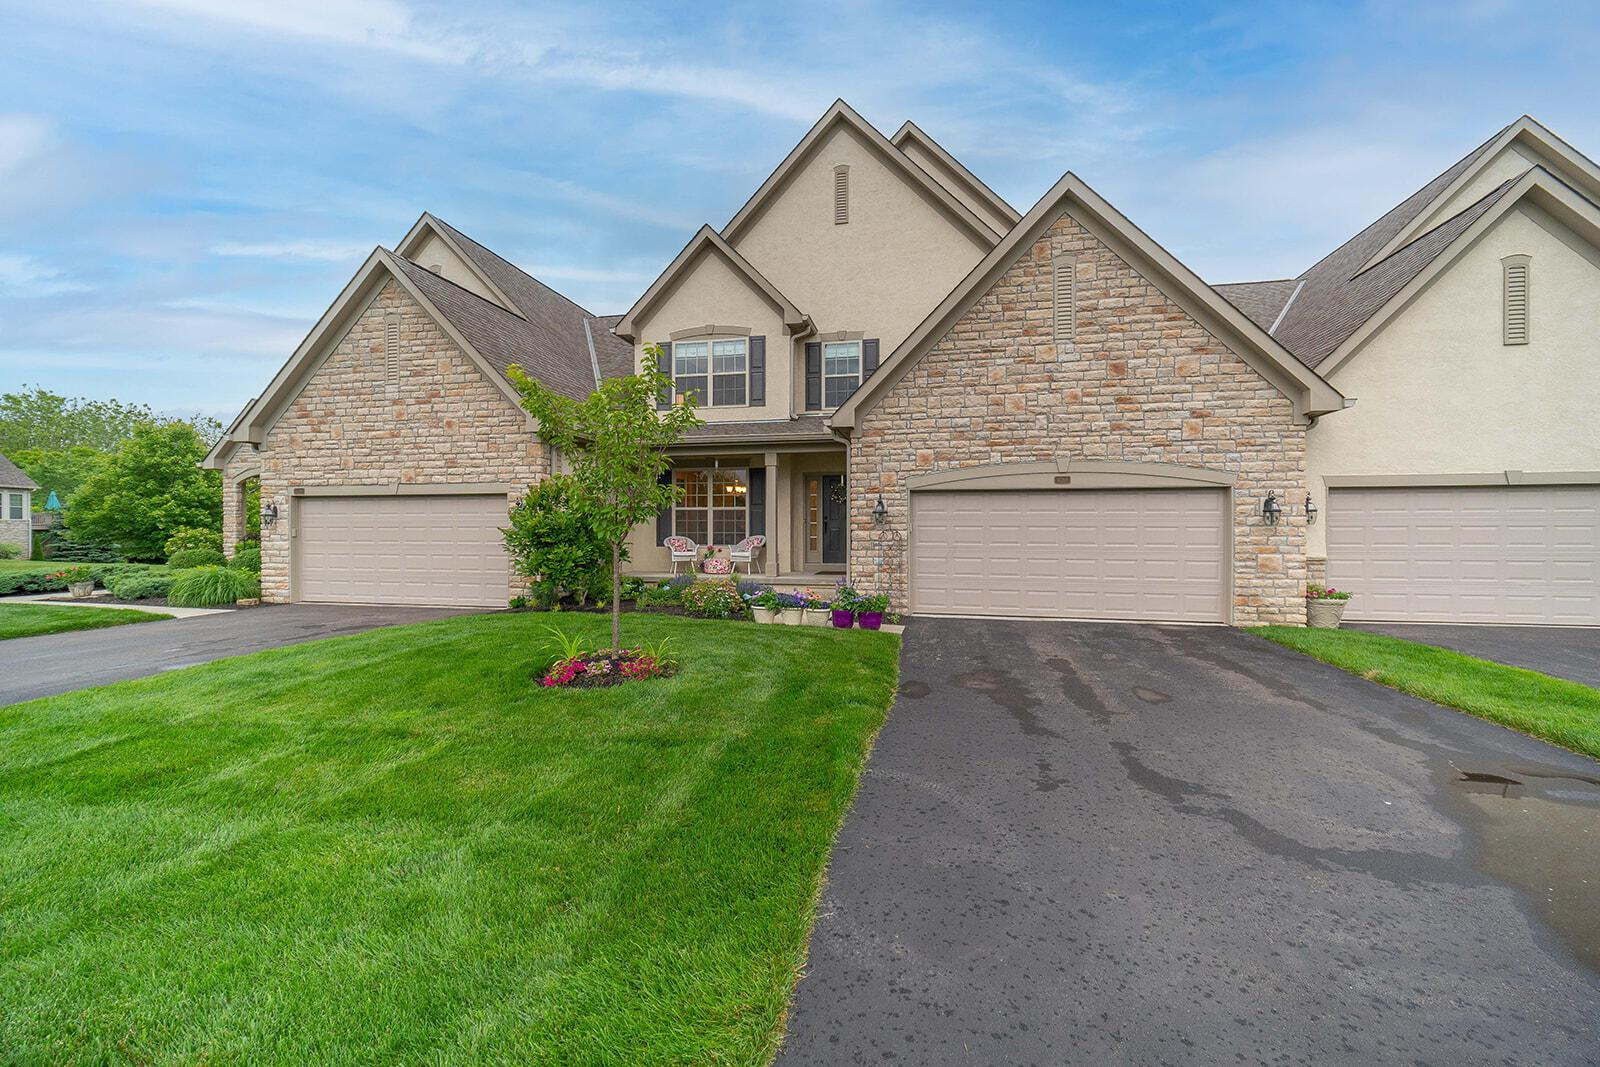 Photo of 4789 Scenic Creek Drive, Powell, OH 43065